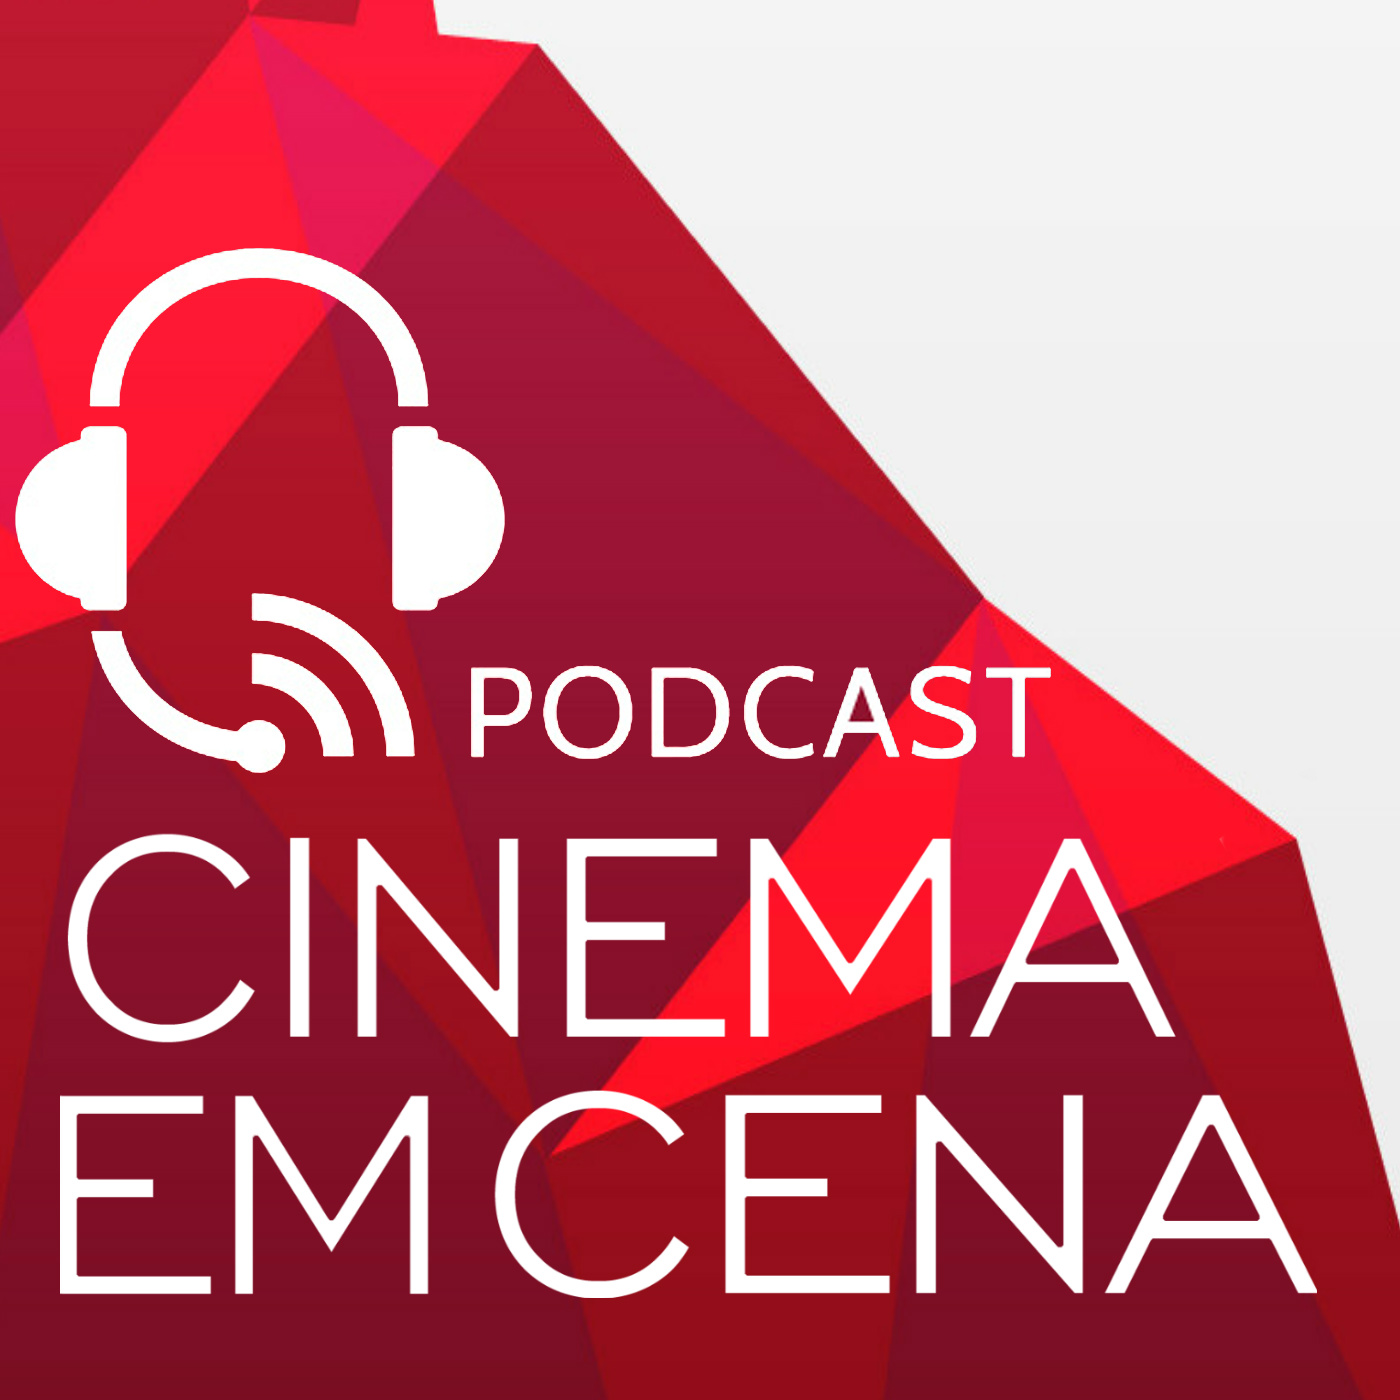 PODCAST #175: Os Beatles no Cinema - Parte 2